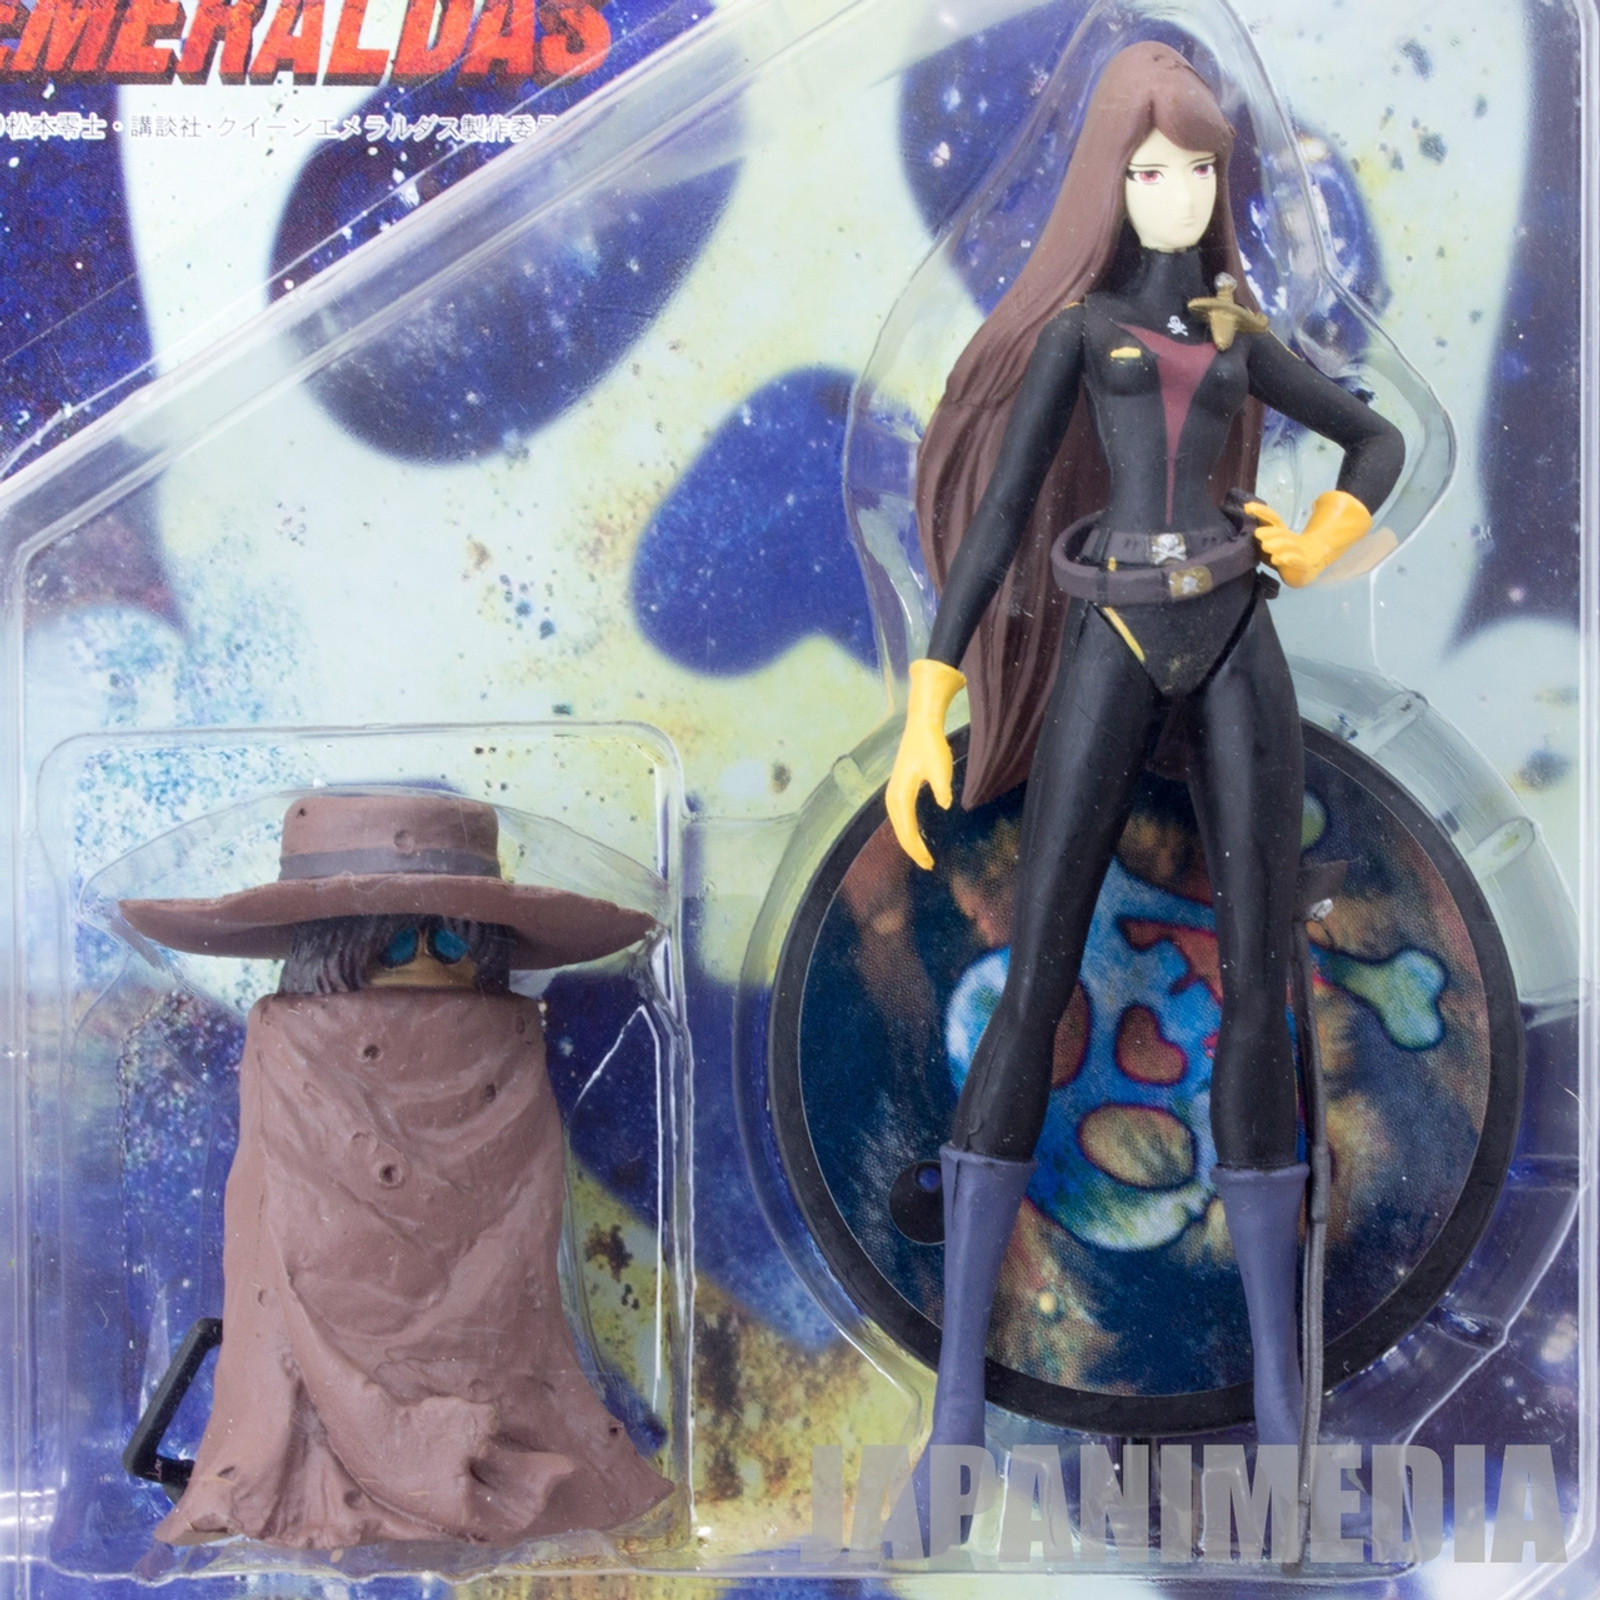 Queen Emeraldas & Tochiro Action Figure JAPAN ANIME MANGA 999 REIJI MATSUMOTO